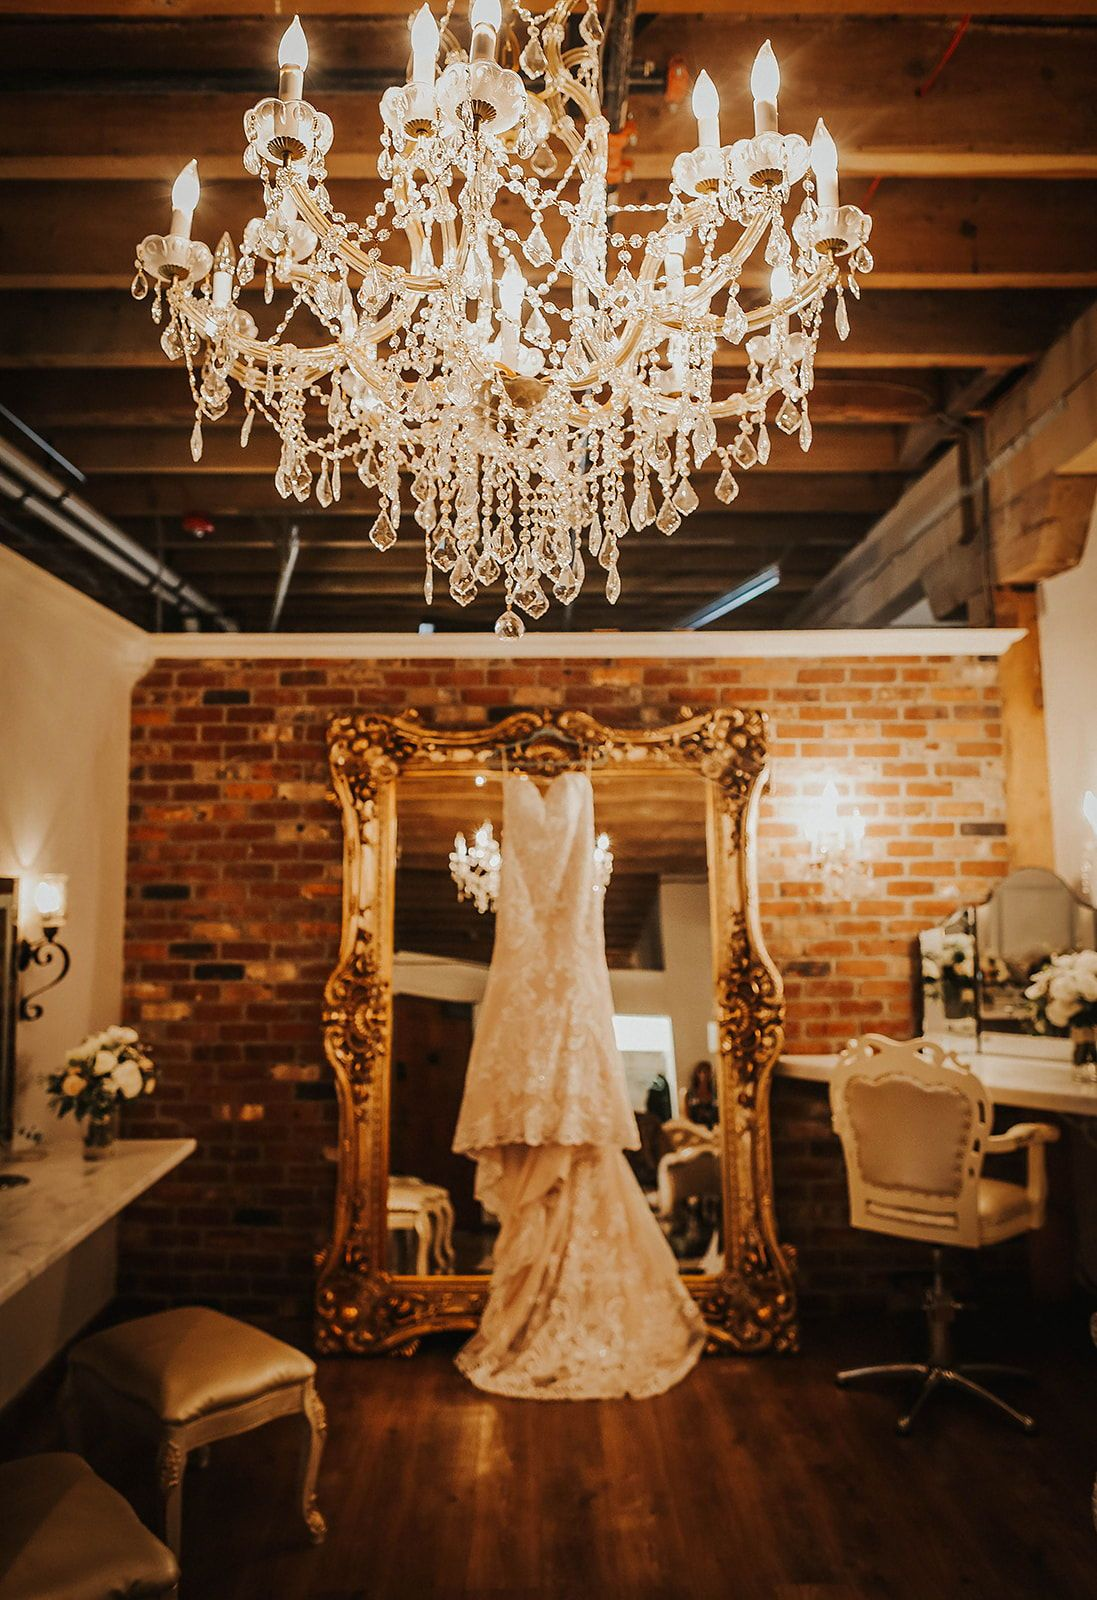 Stunning Wedding Dress Photo In Our Luxury Bridal Suite The Mcginnity Room In Downtown Spokane Is An Elegant Was Bridal Suite Decor Bridal Suite Brides Room Luxury bridal room pictures